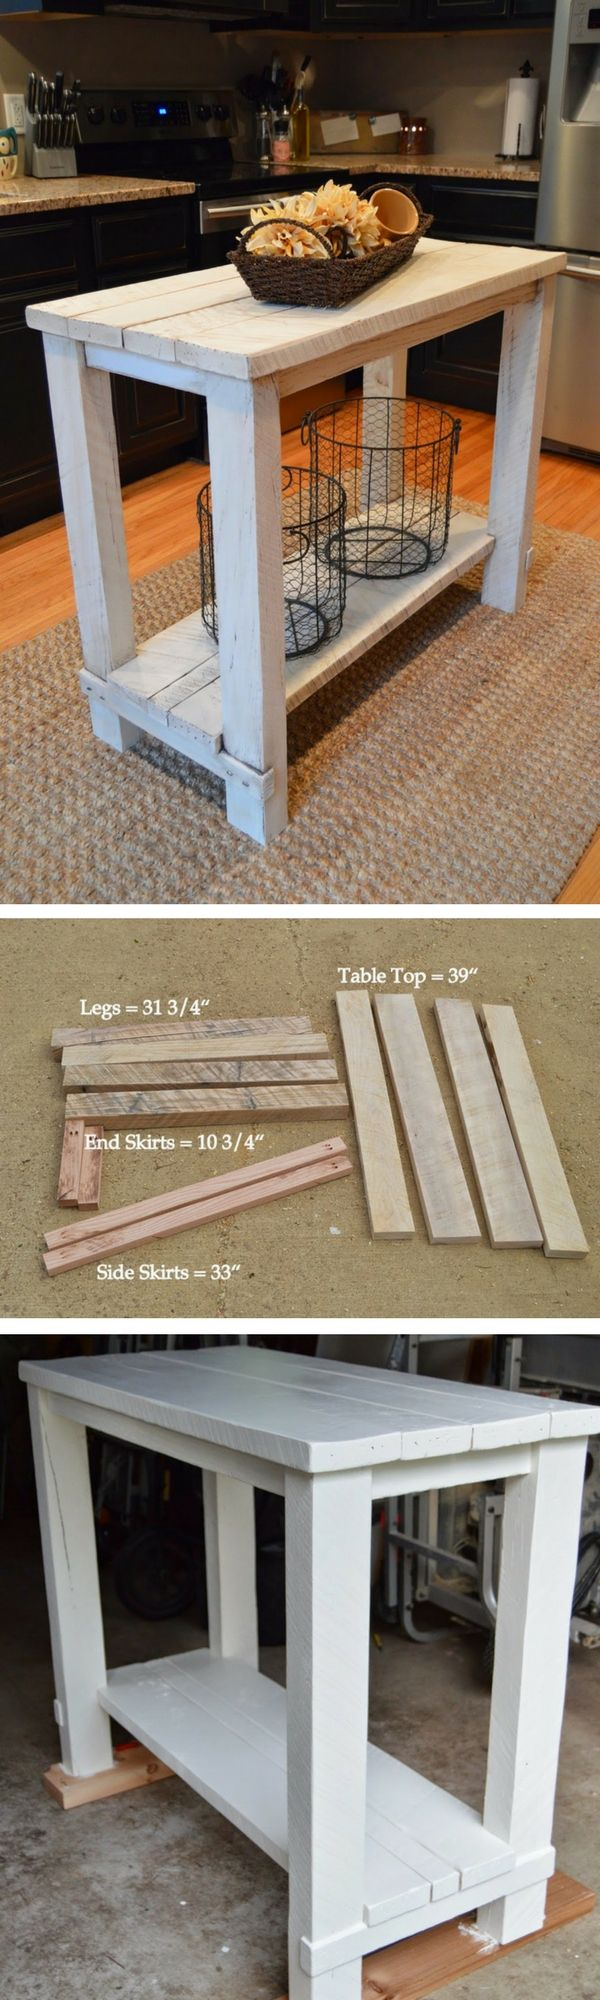 Build kitchen island table - 15 Easy Diy Kitchen Islands That You Can Build Yourself